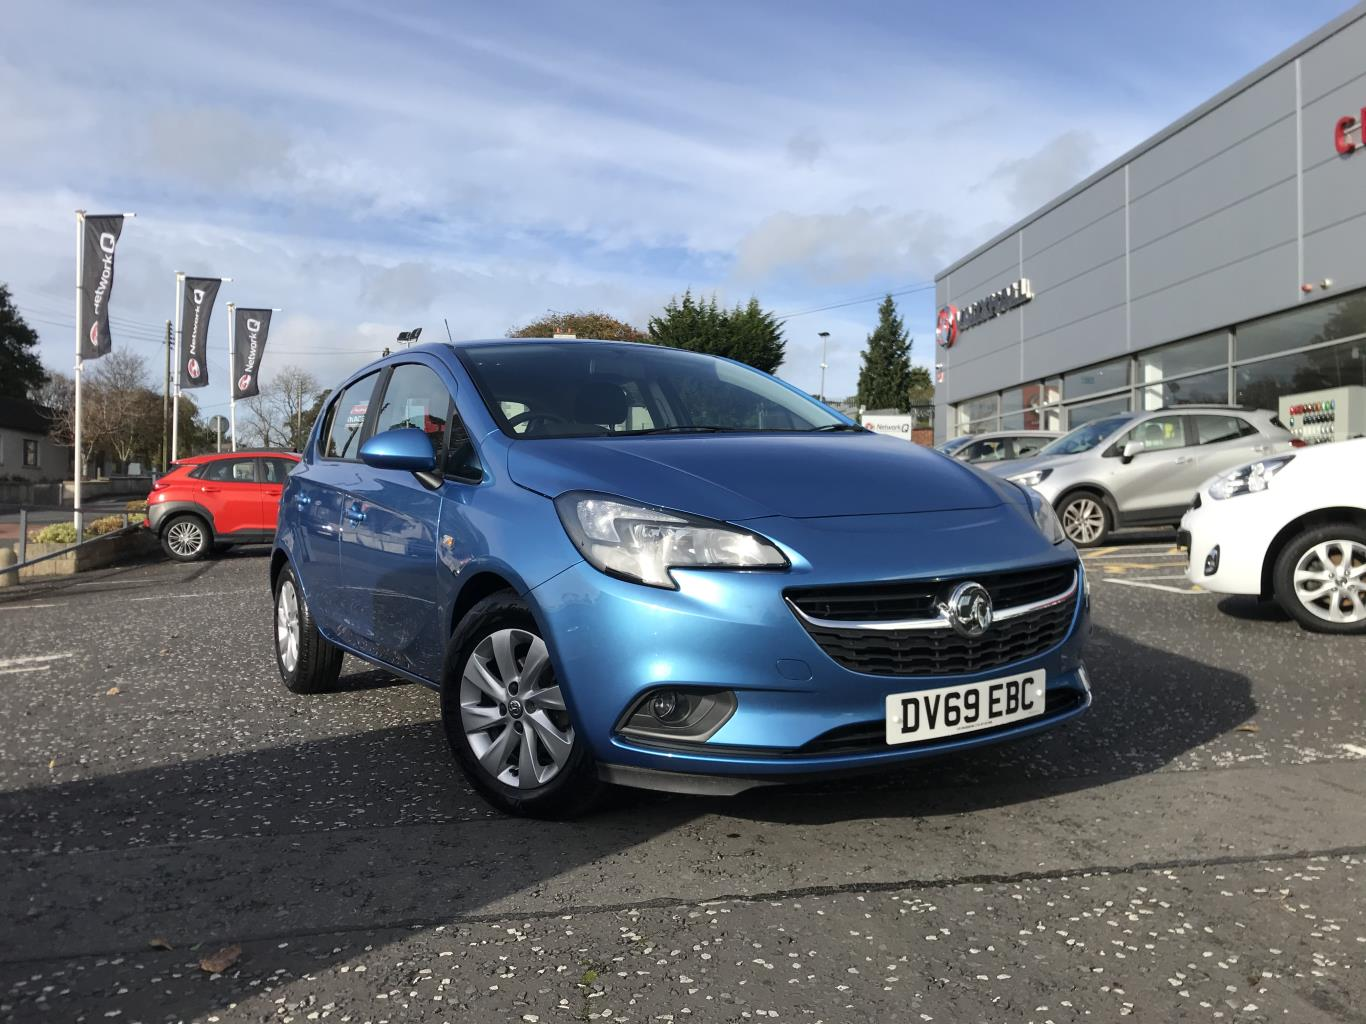 Vauxhall Corsa Design 1.4 75ps 5dr